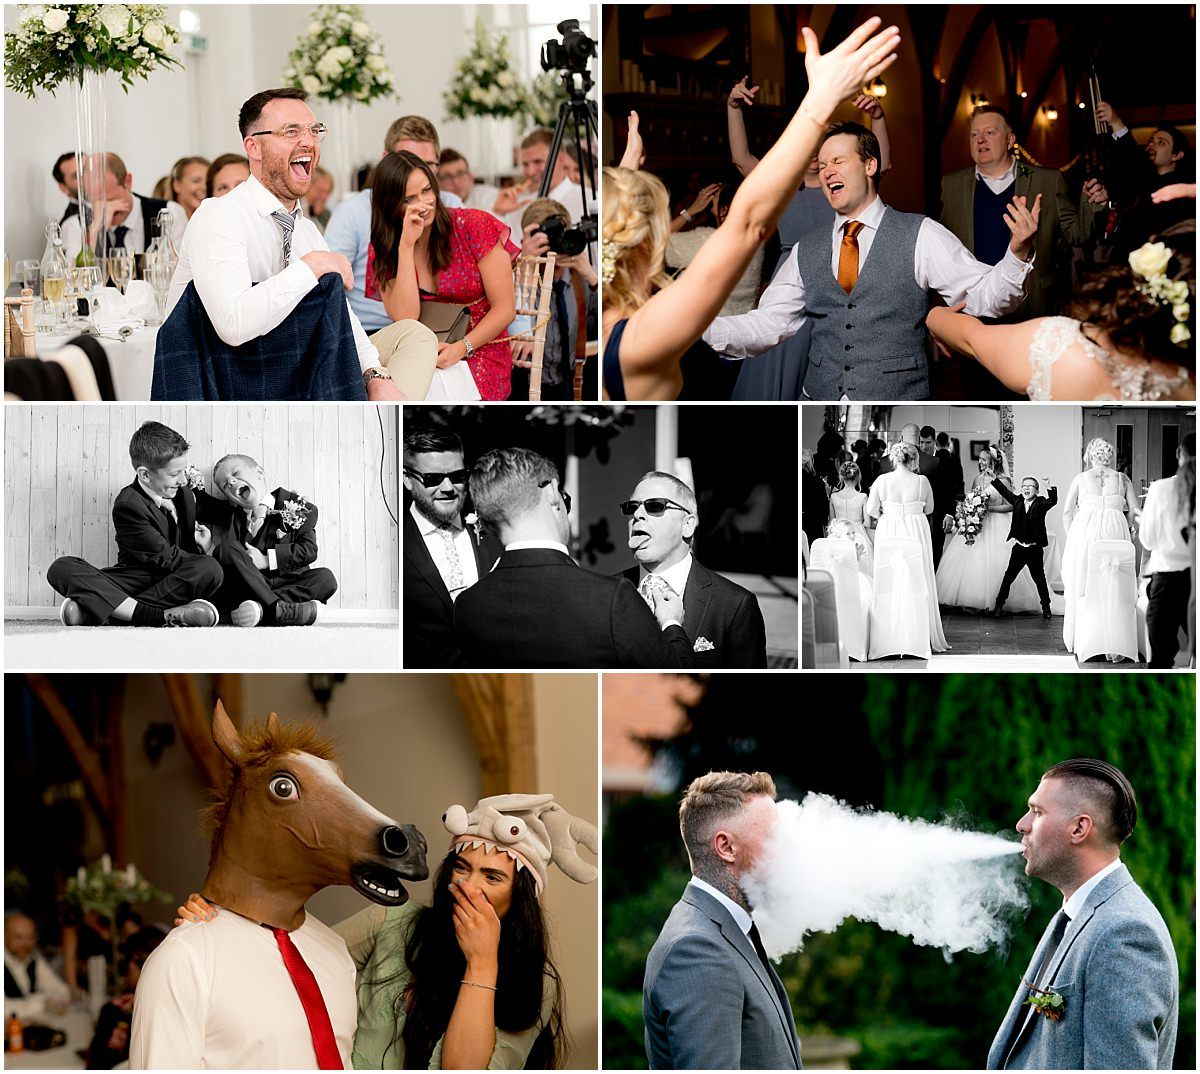 Epic fun photographs of guests